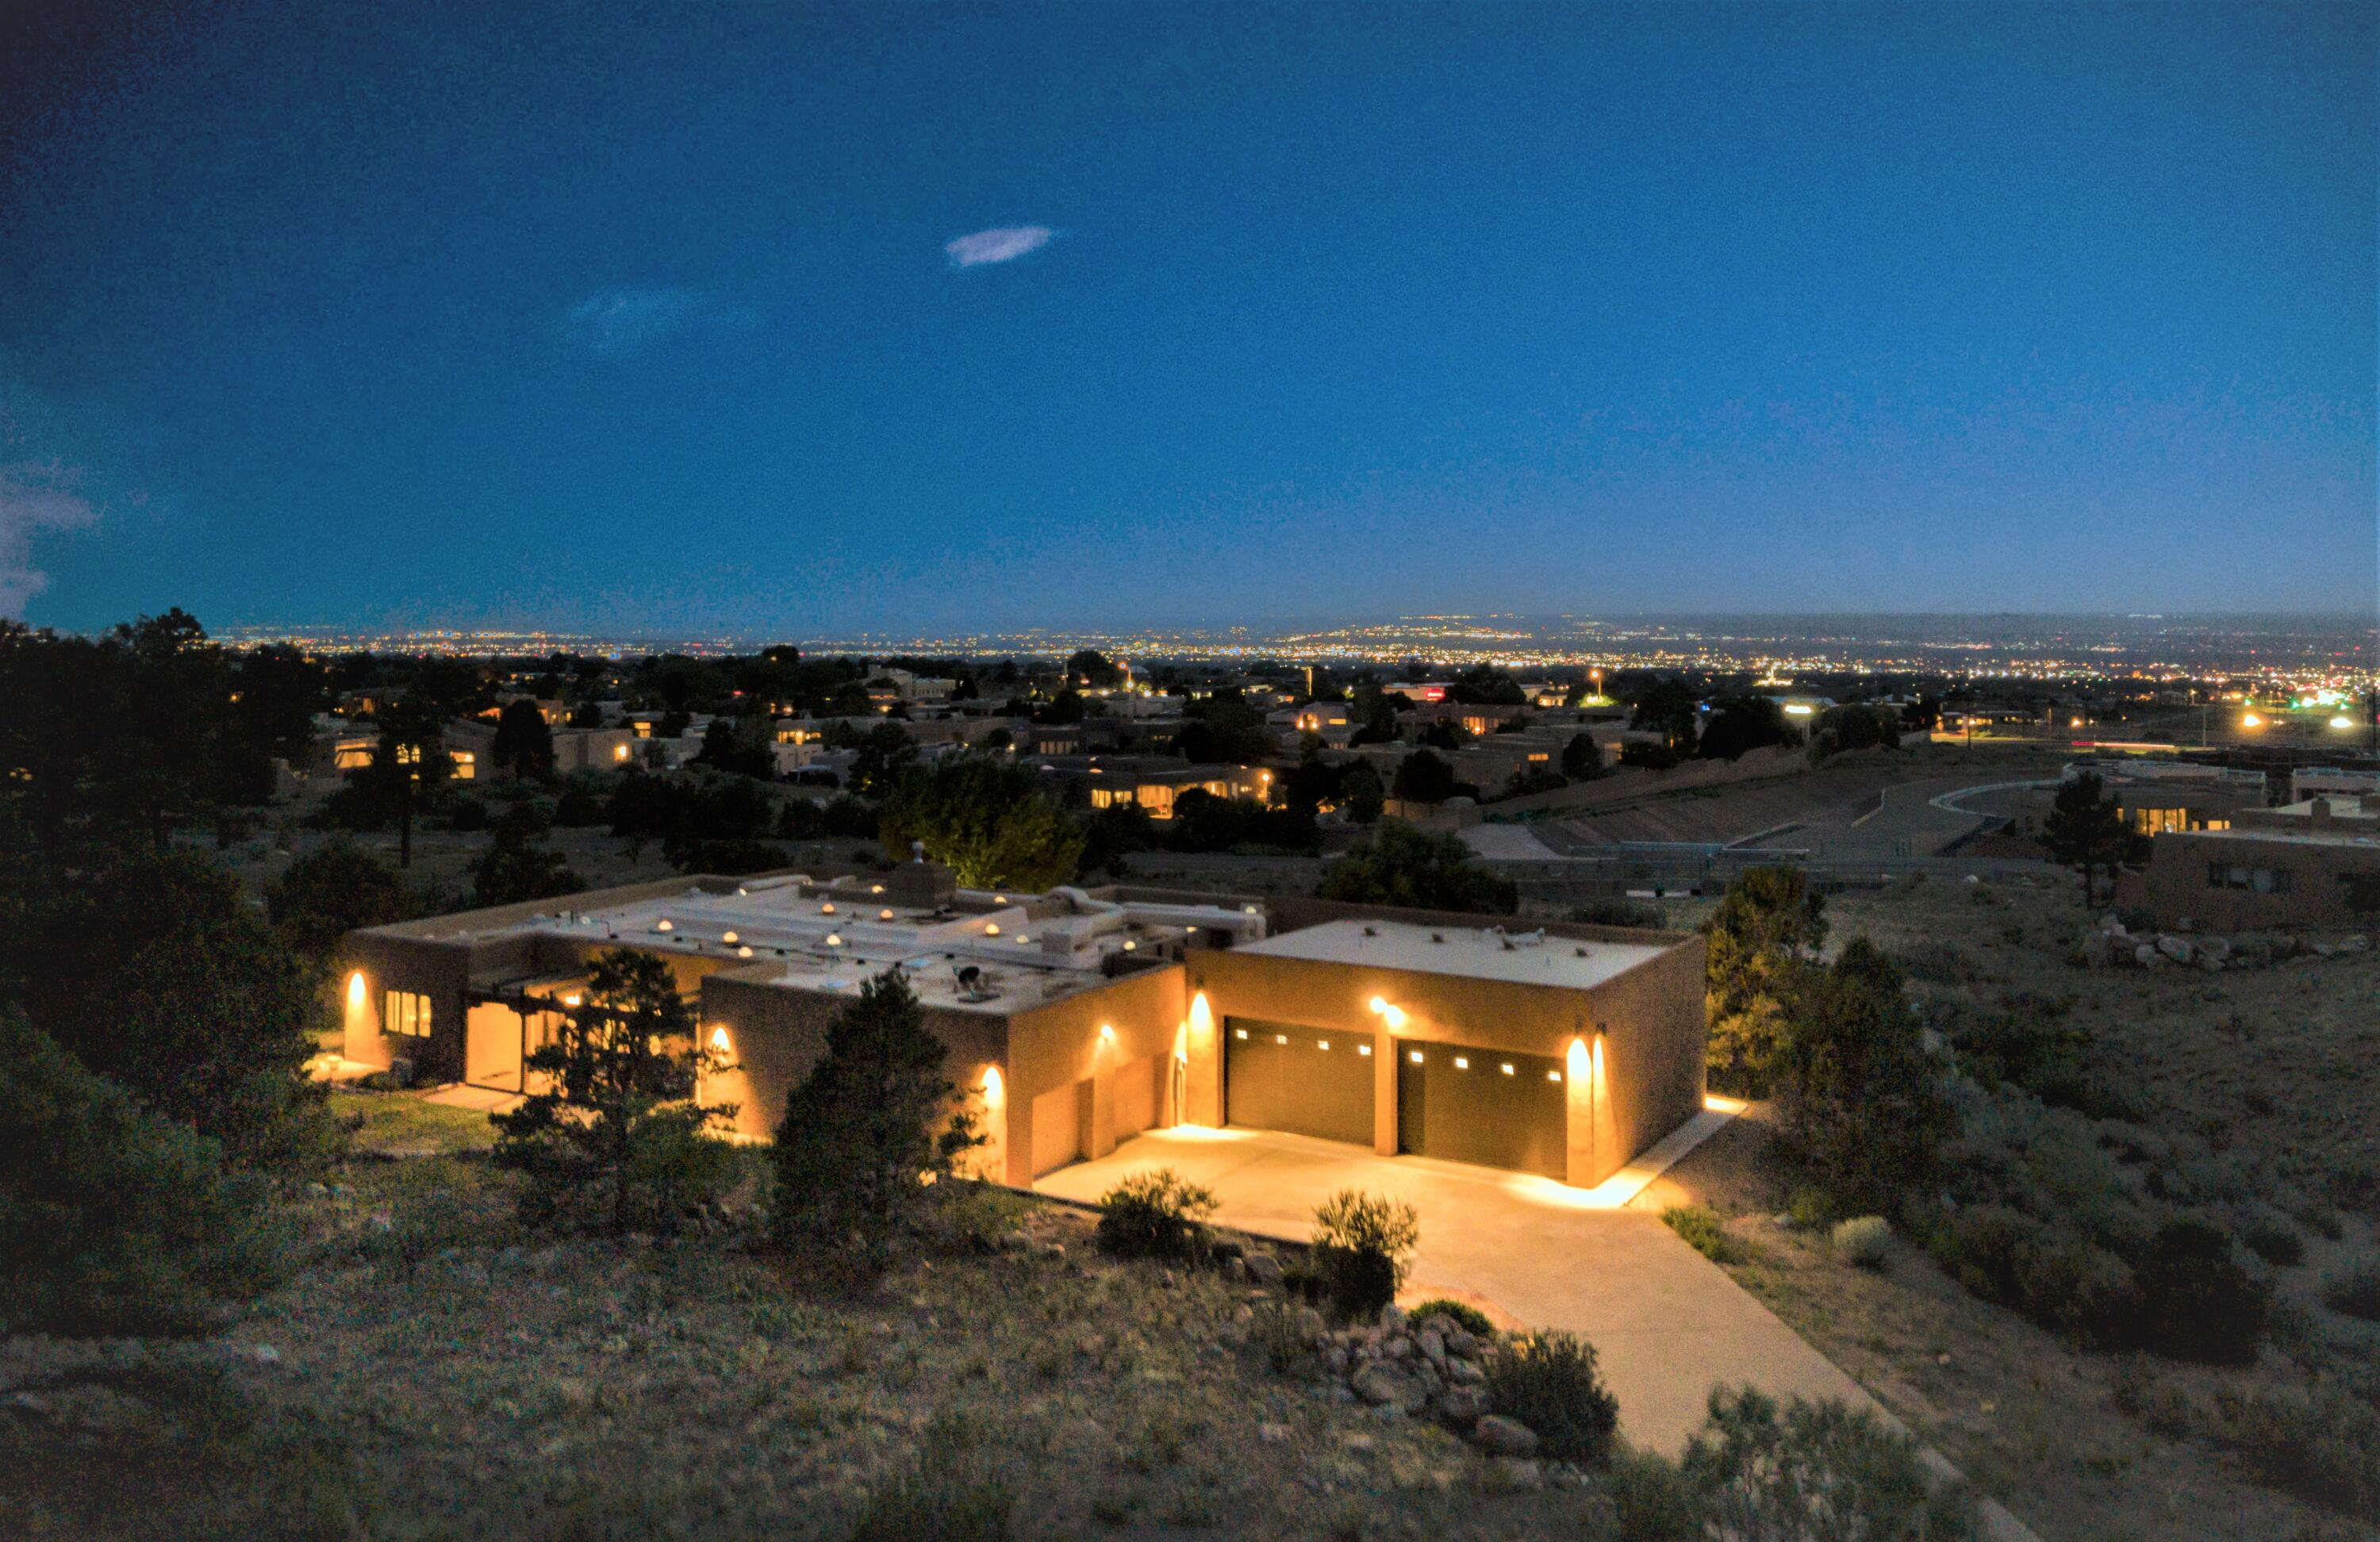 Gorgeous 1 level custom home, built by Jack Wirtz, in SANDIA HEIGHTS!  Located on  a 1 acre lot with city and mountain views, this property features 3 or 4 bedrooms, 3 bathrooms, a gorgeous remodeled kitchen (in 2017 that includes quartz countertops, red oak cabinets, subzero refrigerator/freezer, and more), and a 6 car garage (that totals approximately 2,000 square feet... the 4 car garage is wired for 2 mini-splits. The primary bedroom is large (as all of the bedrooms are) with a spa-like bath and shower (2017).  Energy efficient 18'' block concrete filled exterior walls, solatube lighting throughout the house (21 installed), antique stained glass external and internal doors, .  A must see !!